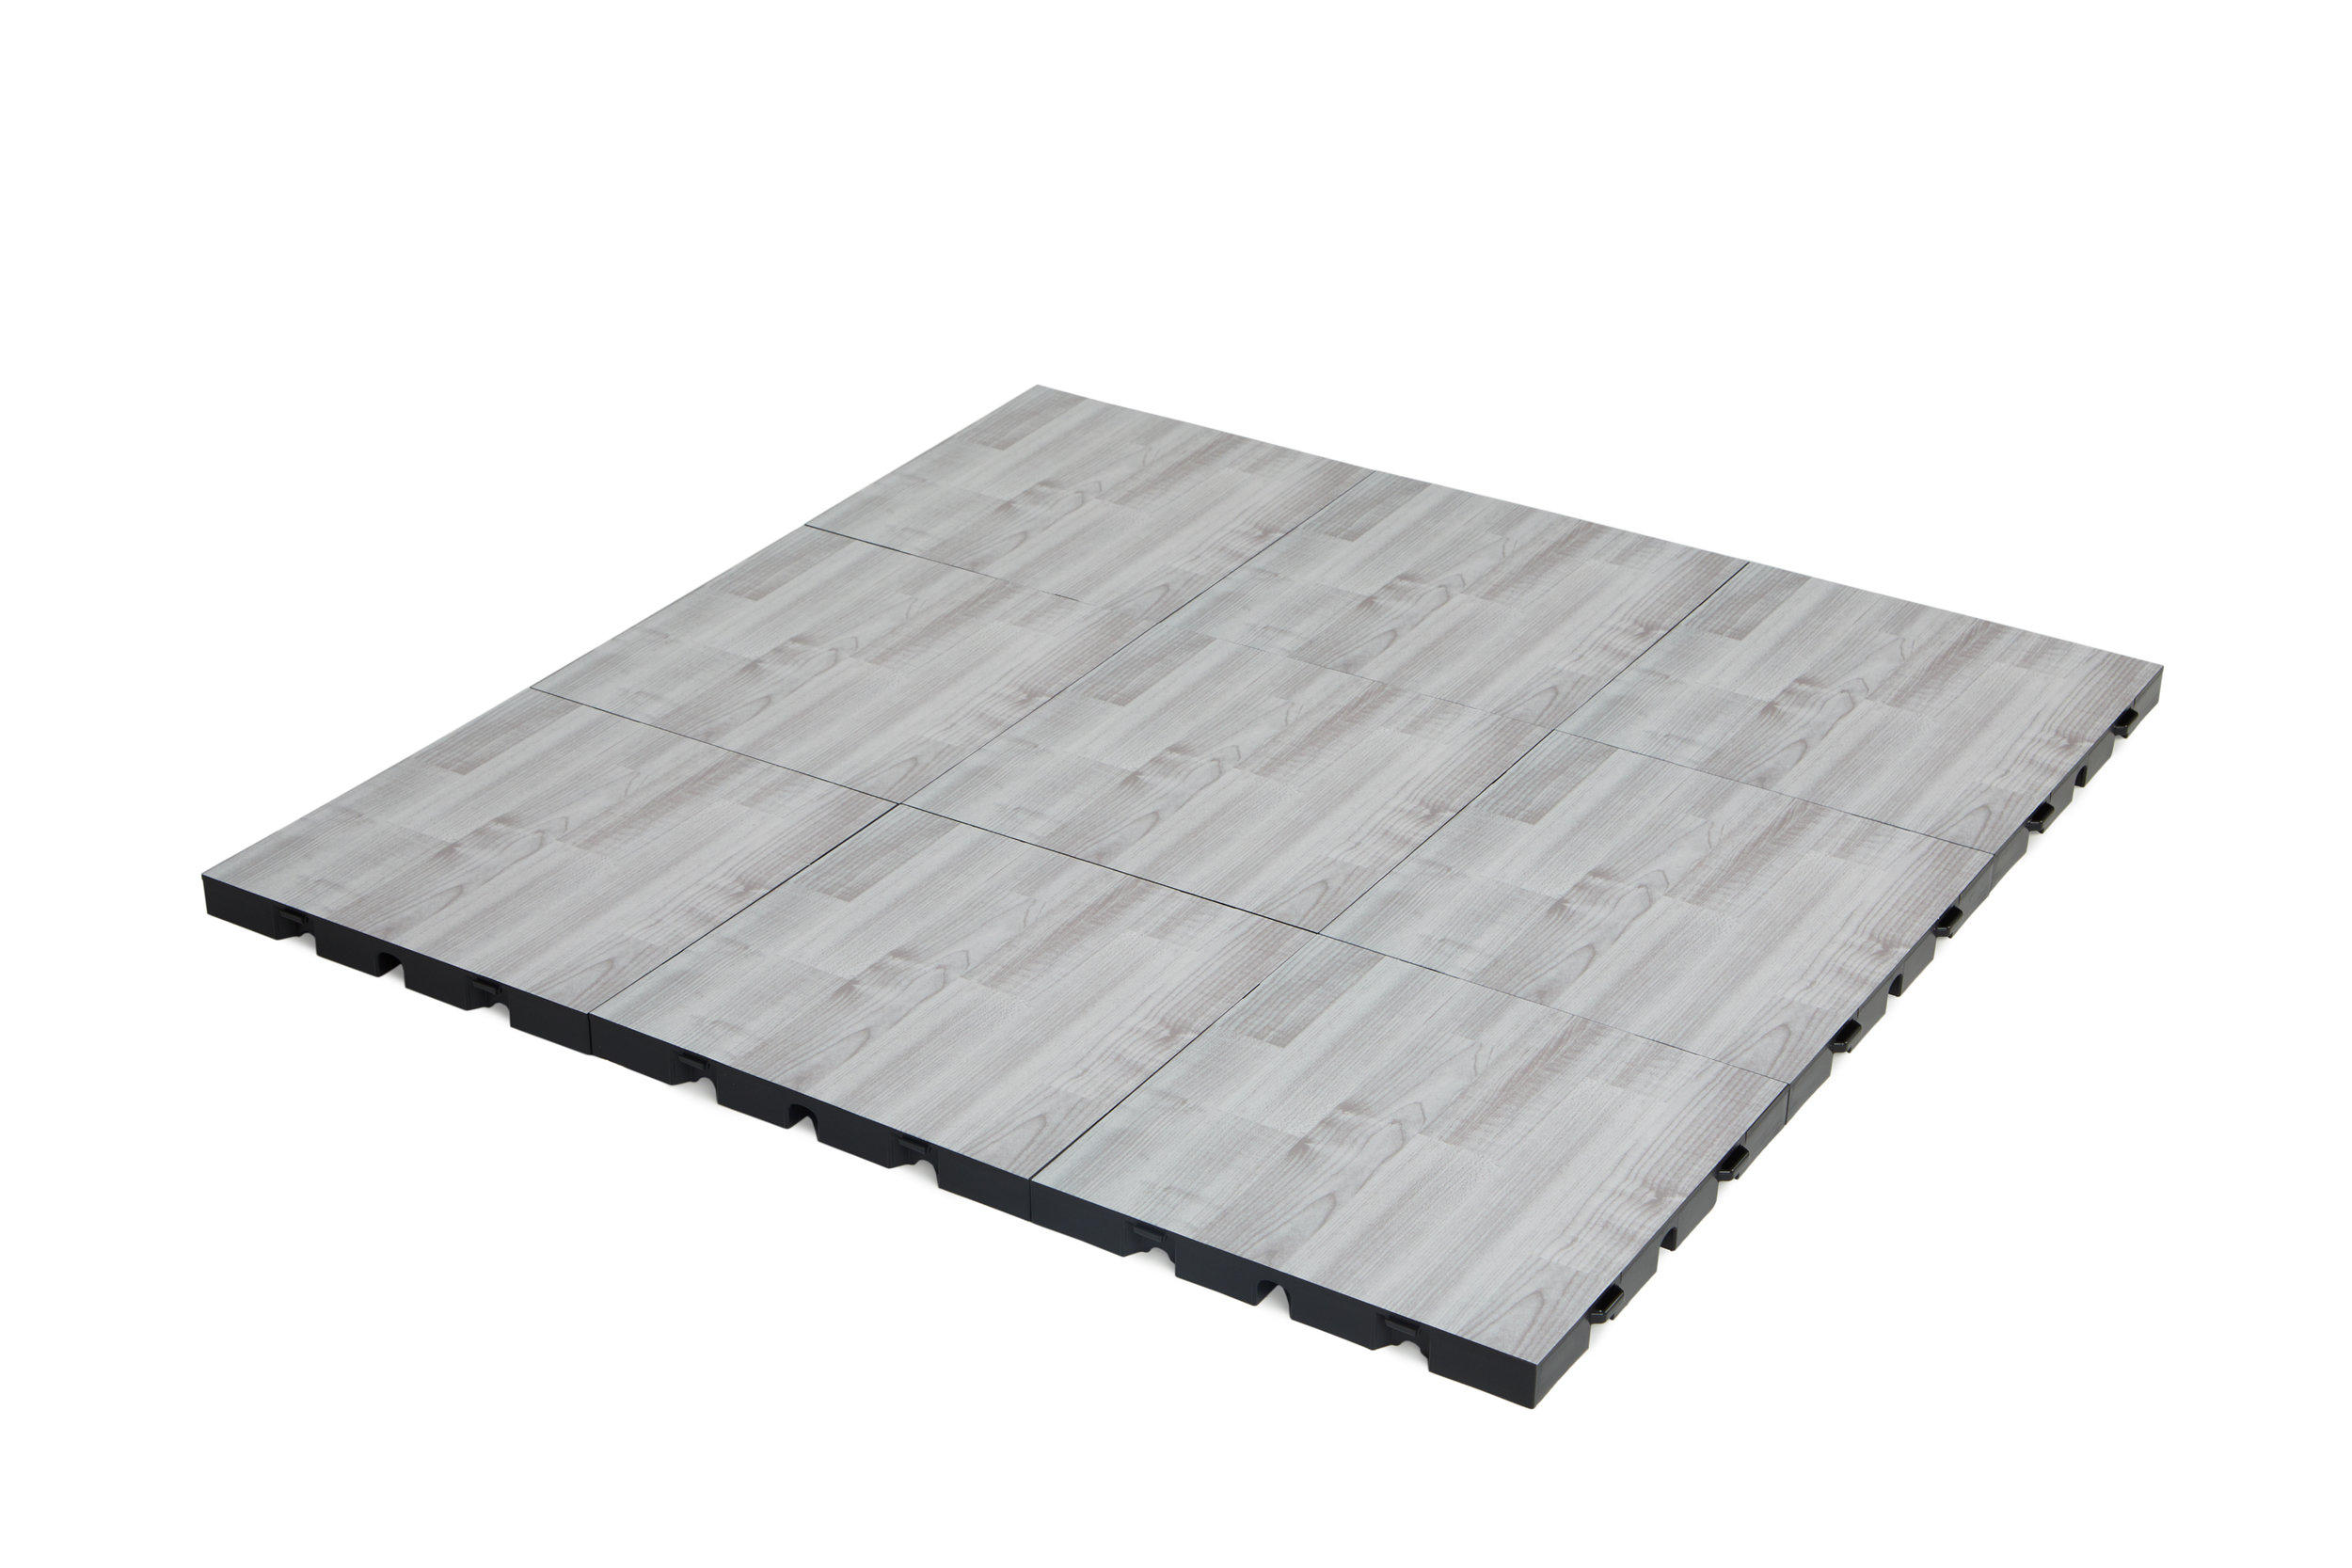 Need Modular Flooring For Your Event? - Visit the EverBlock Flooring division to learn more about our industry leading flooring systems. www.everblockflooring.com